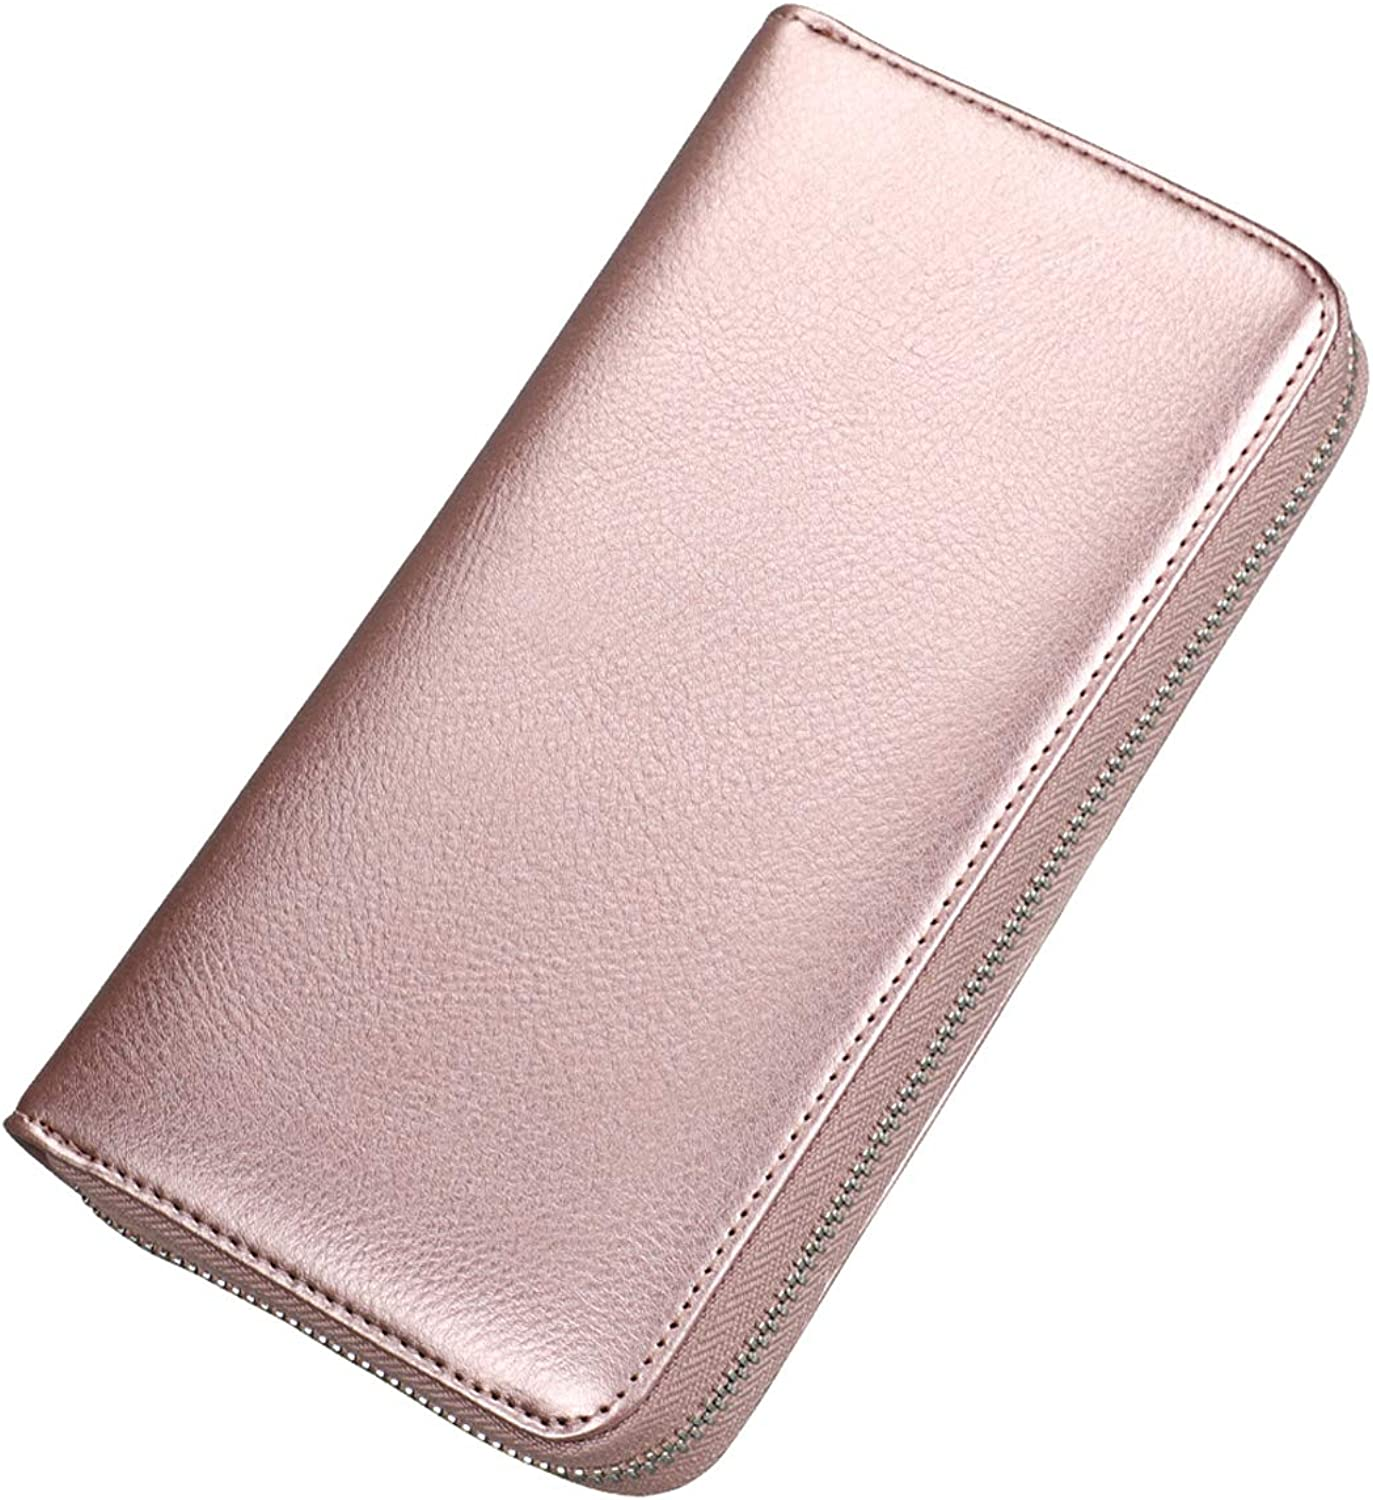 Credit Card Wallet for Women Zip Leather Portable Card Bag RFID Blocking